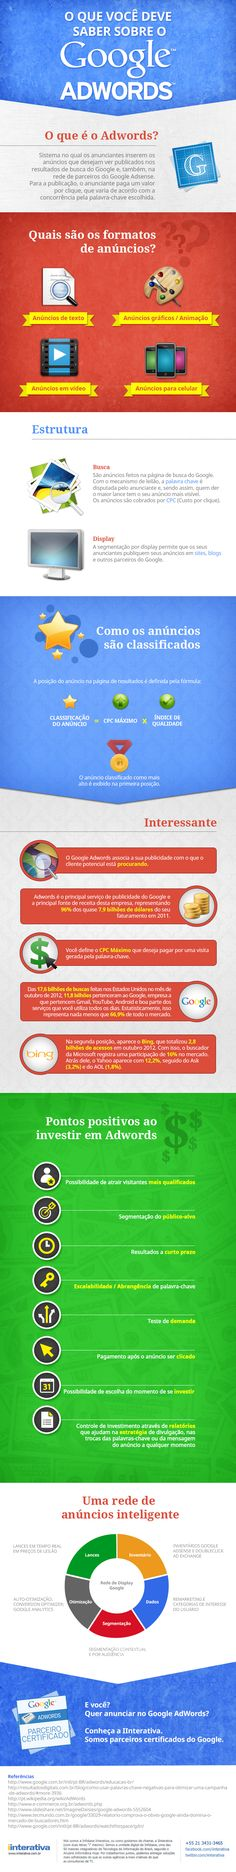 Como funciona o Google Adwords? - Infográficos - Marketing - Administradores.com